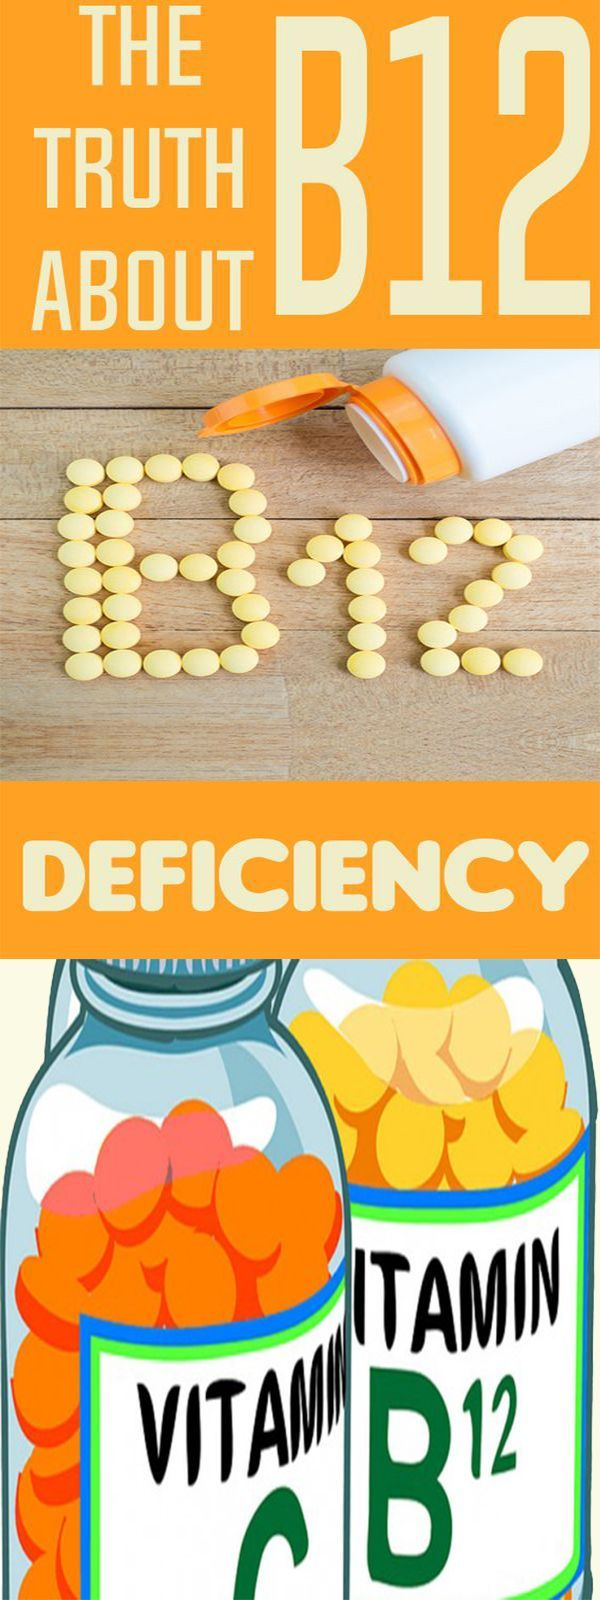 GIVE ME 10 MINUTES, I'LL GIVE YOU THE TRUTH ABOUT VITAMIN B12 DEFICIENCY http://www.easylifevision.com/give-me-10-minutes-ill-give-you-the-truth-about-vitamin-b12-deficiency/ #vitaminC #vitaminA #L4L